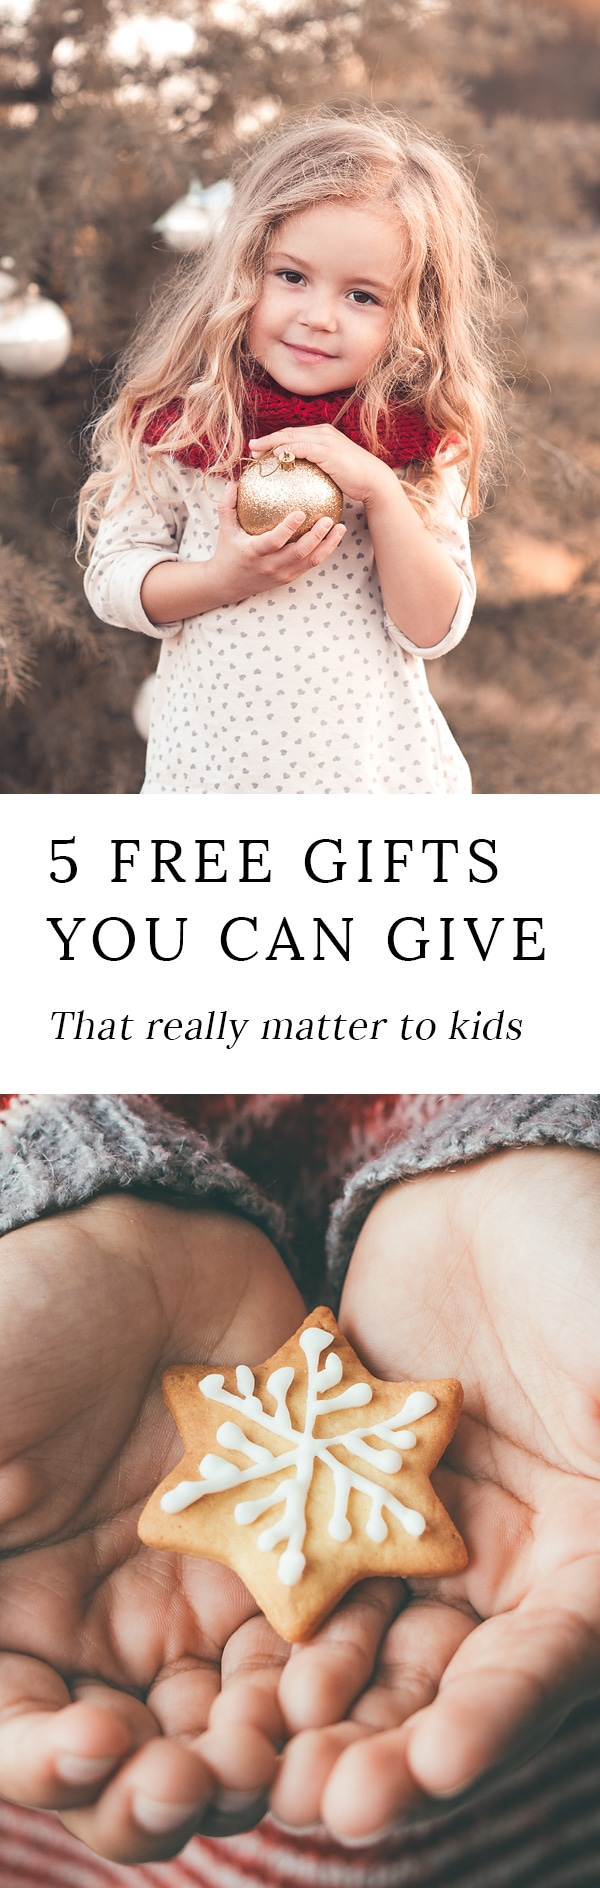 What Kids Really Want for Christmas via @firefliesandmudpies